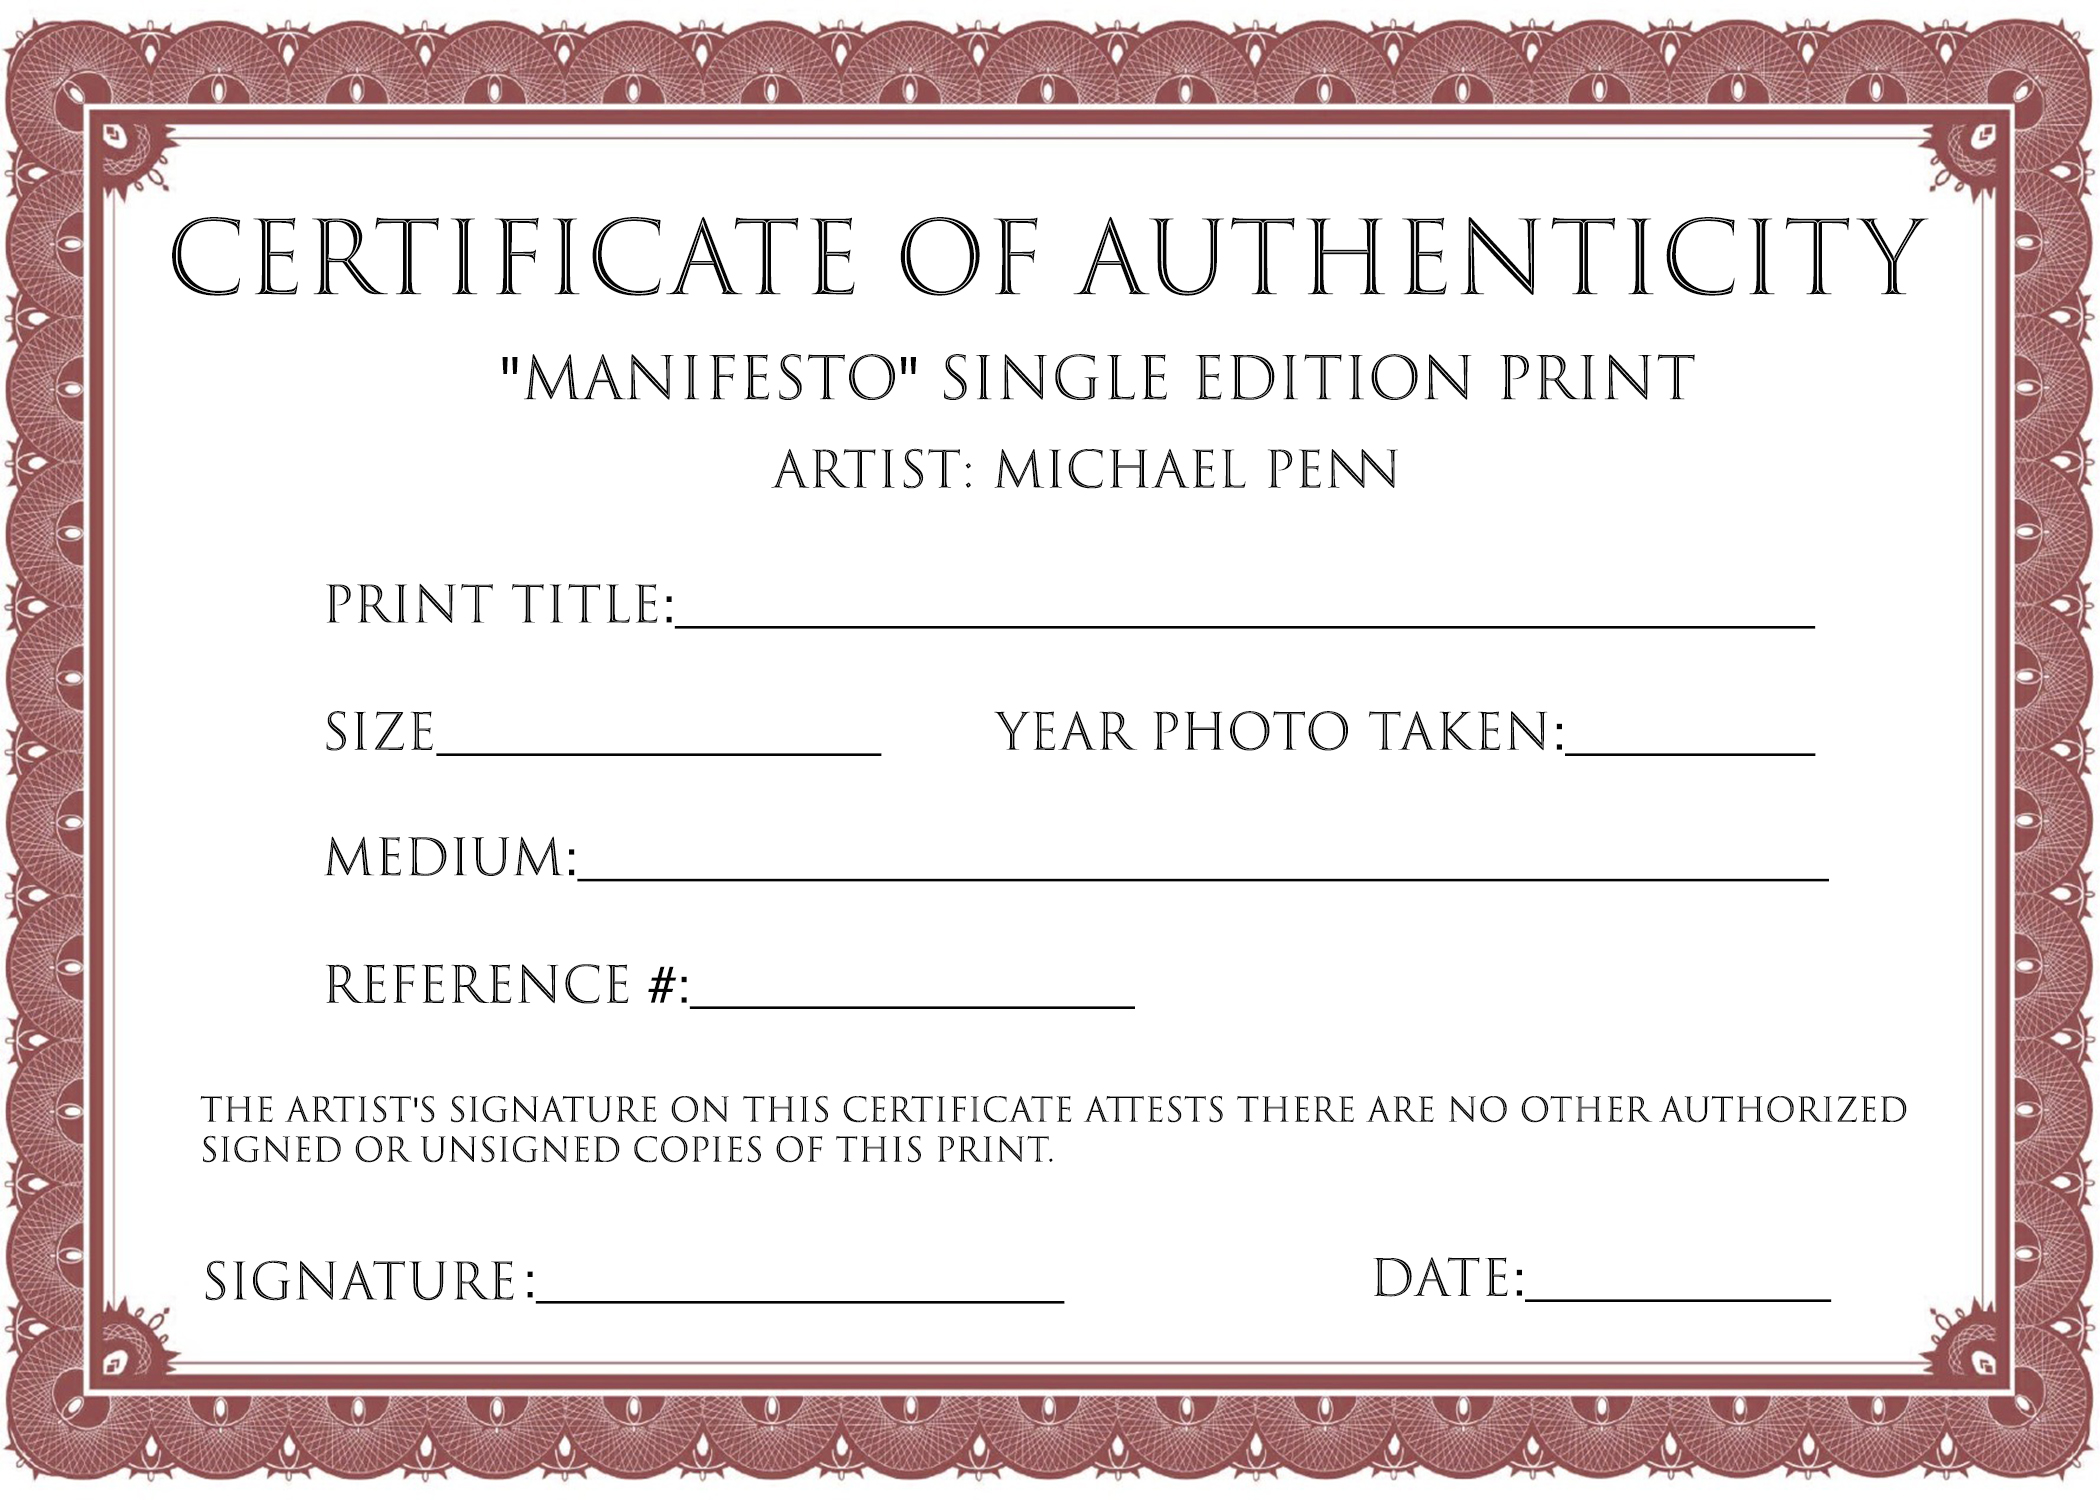 Example of certificate of authenticity